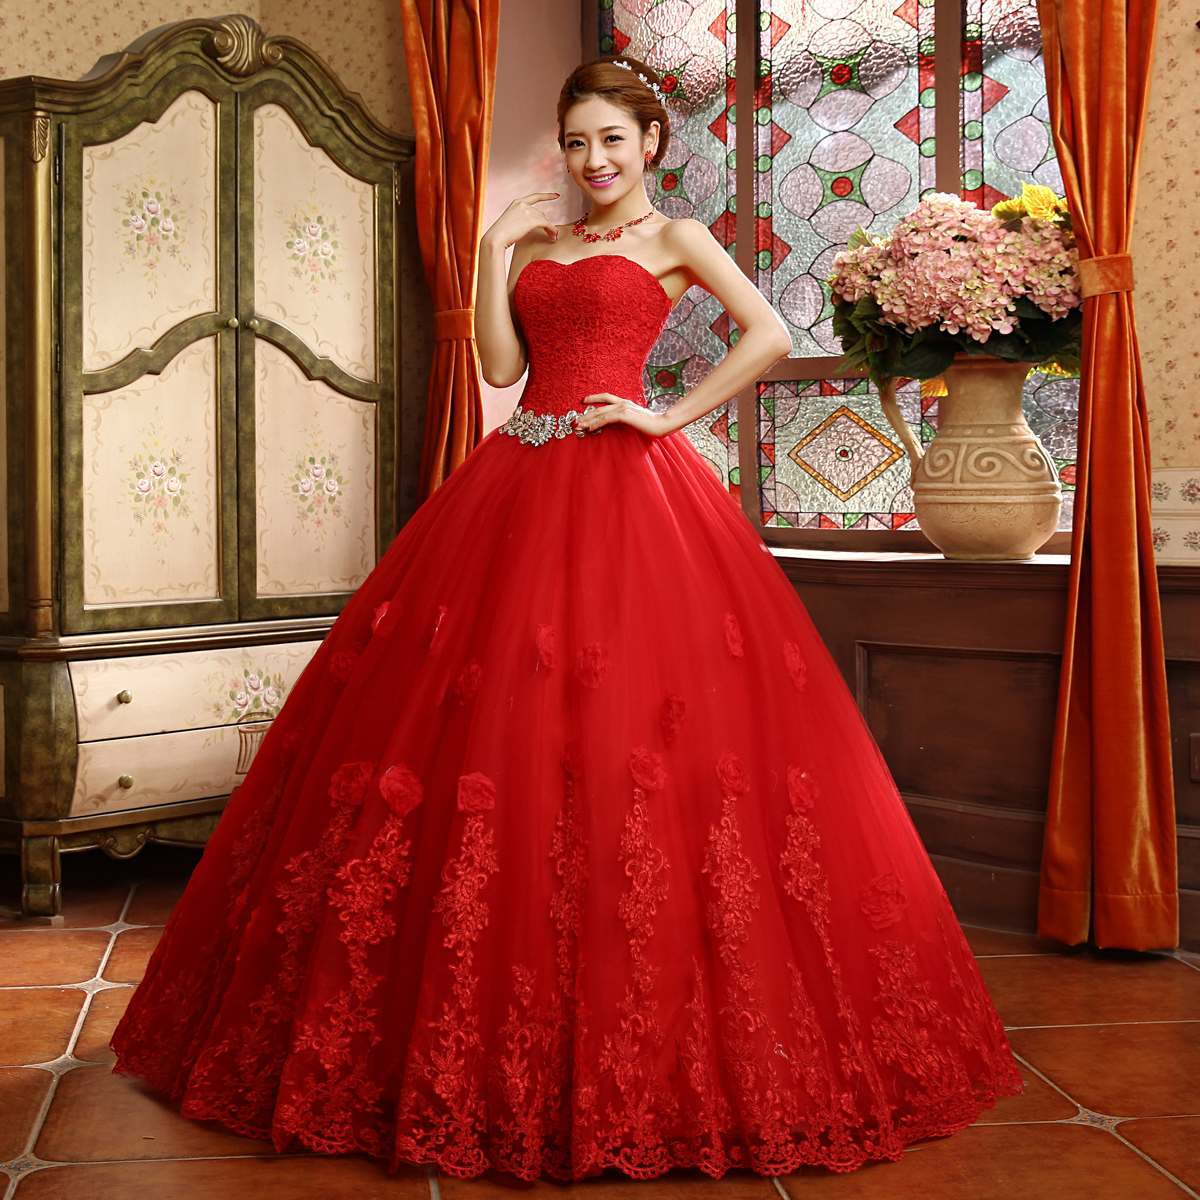 Red Wedding Dresses Buy Online - Wedding Dresses In Redlands